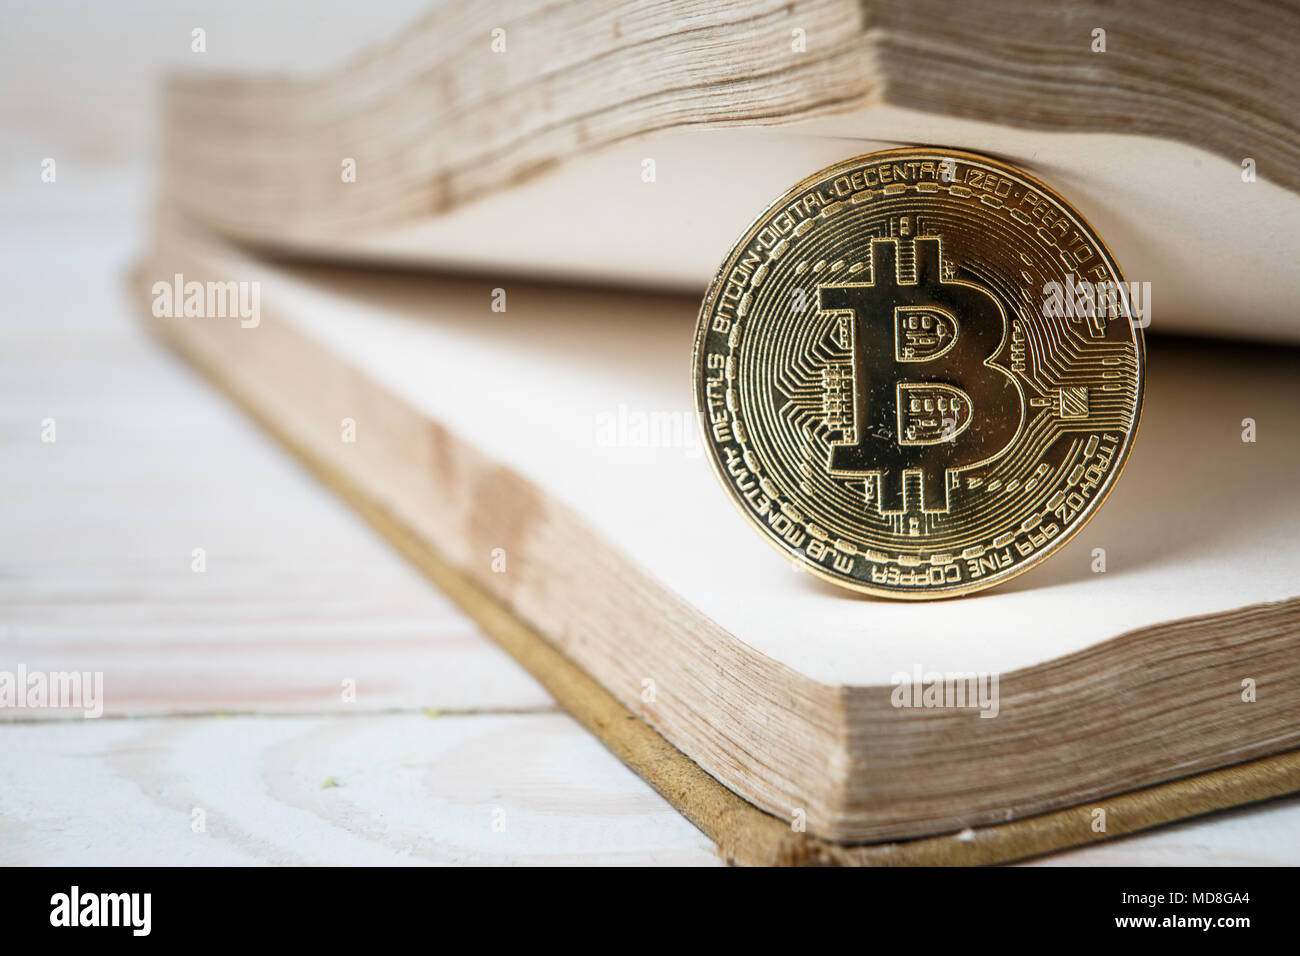 Golden bitcoin on open book electronic or digital money - Stock Image